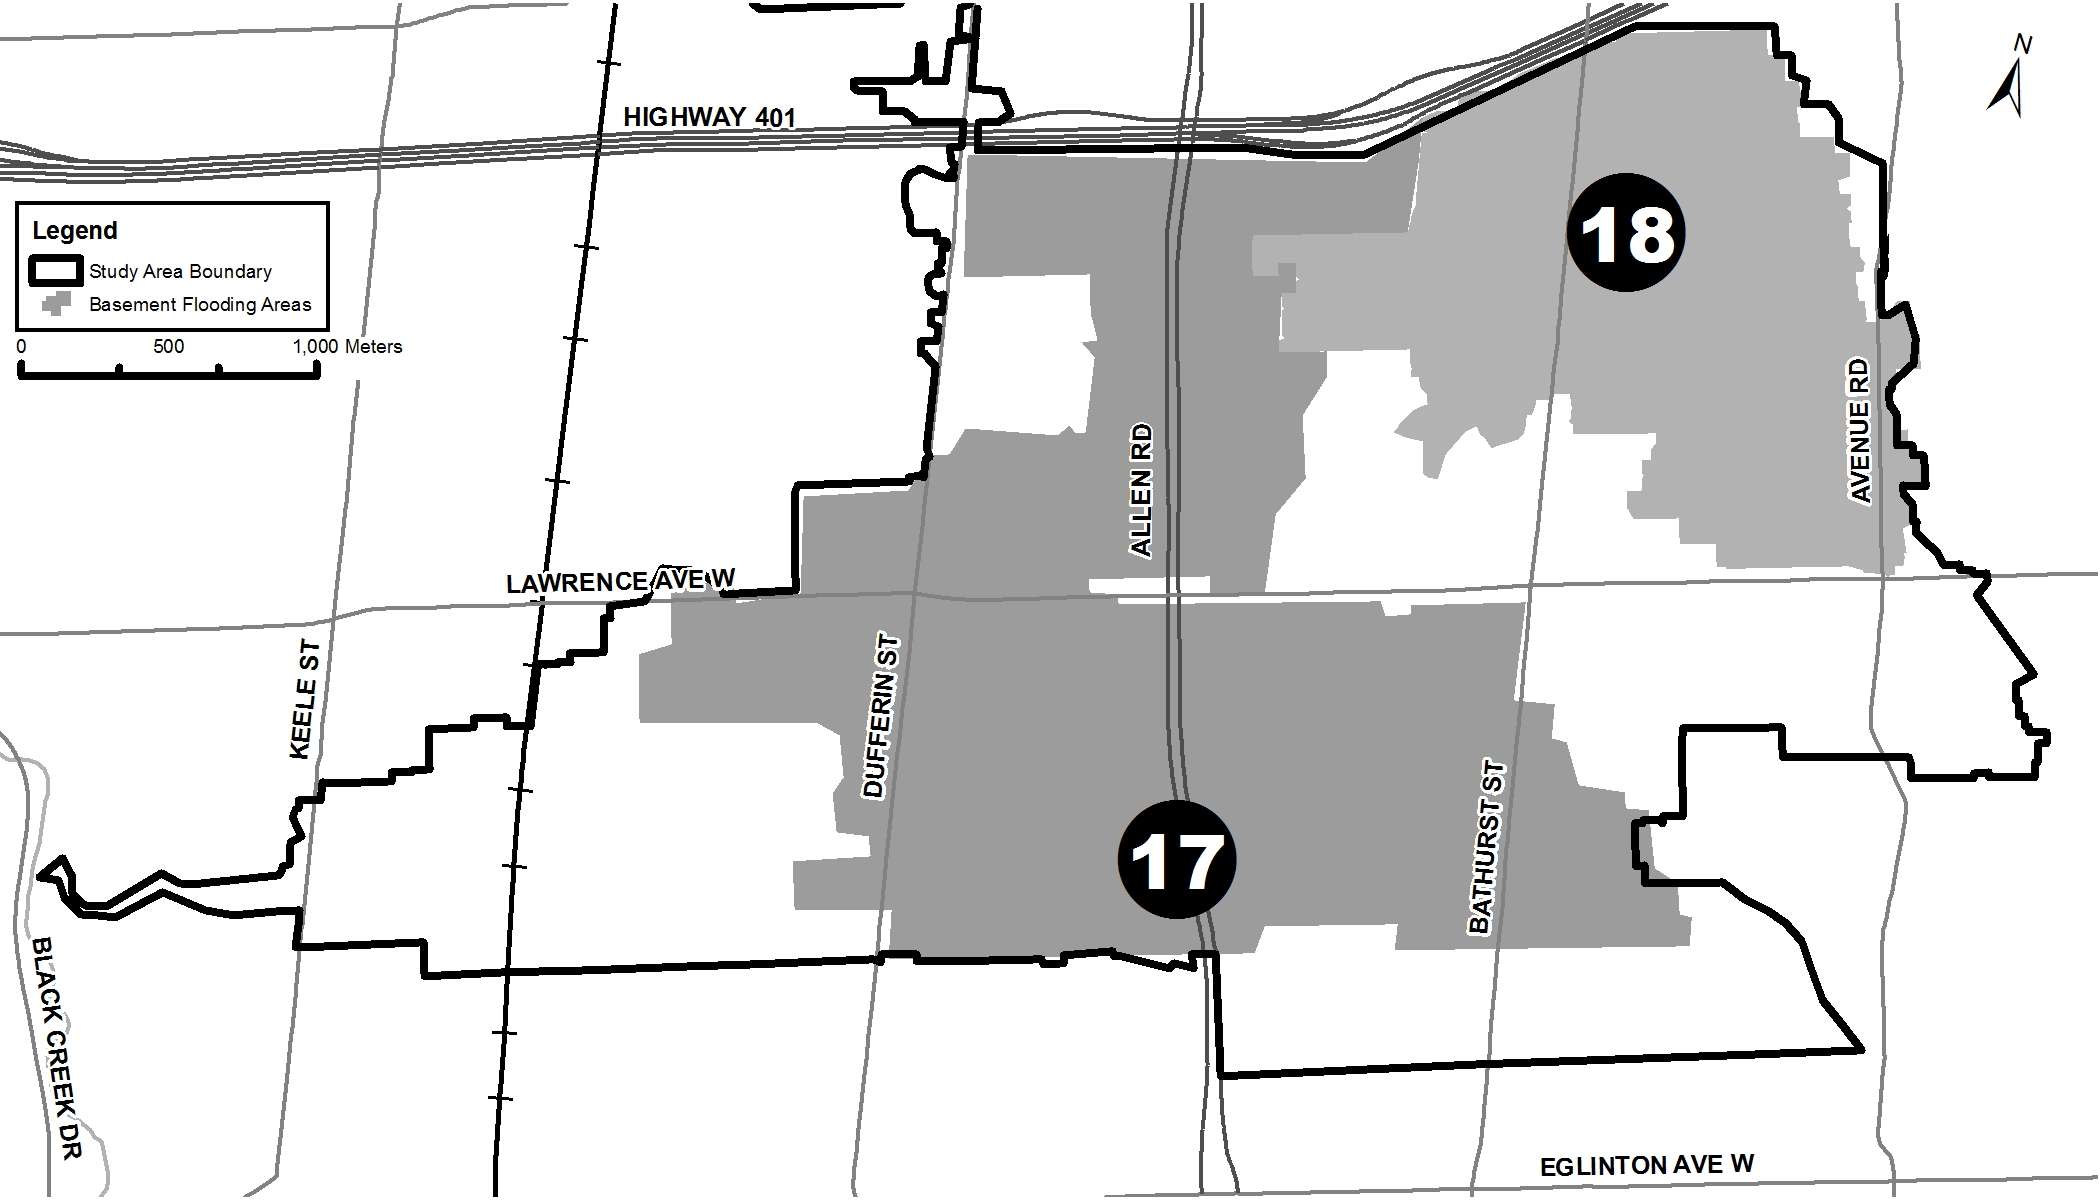 BF Study Area 17 - 18 - roughly Dufferin to Bathurst St from Hwy 401 to Roselawn Ave